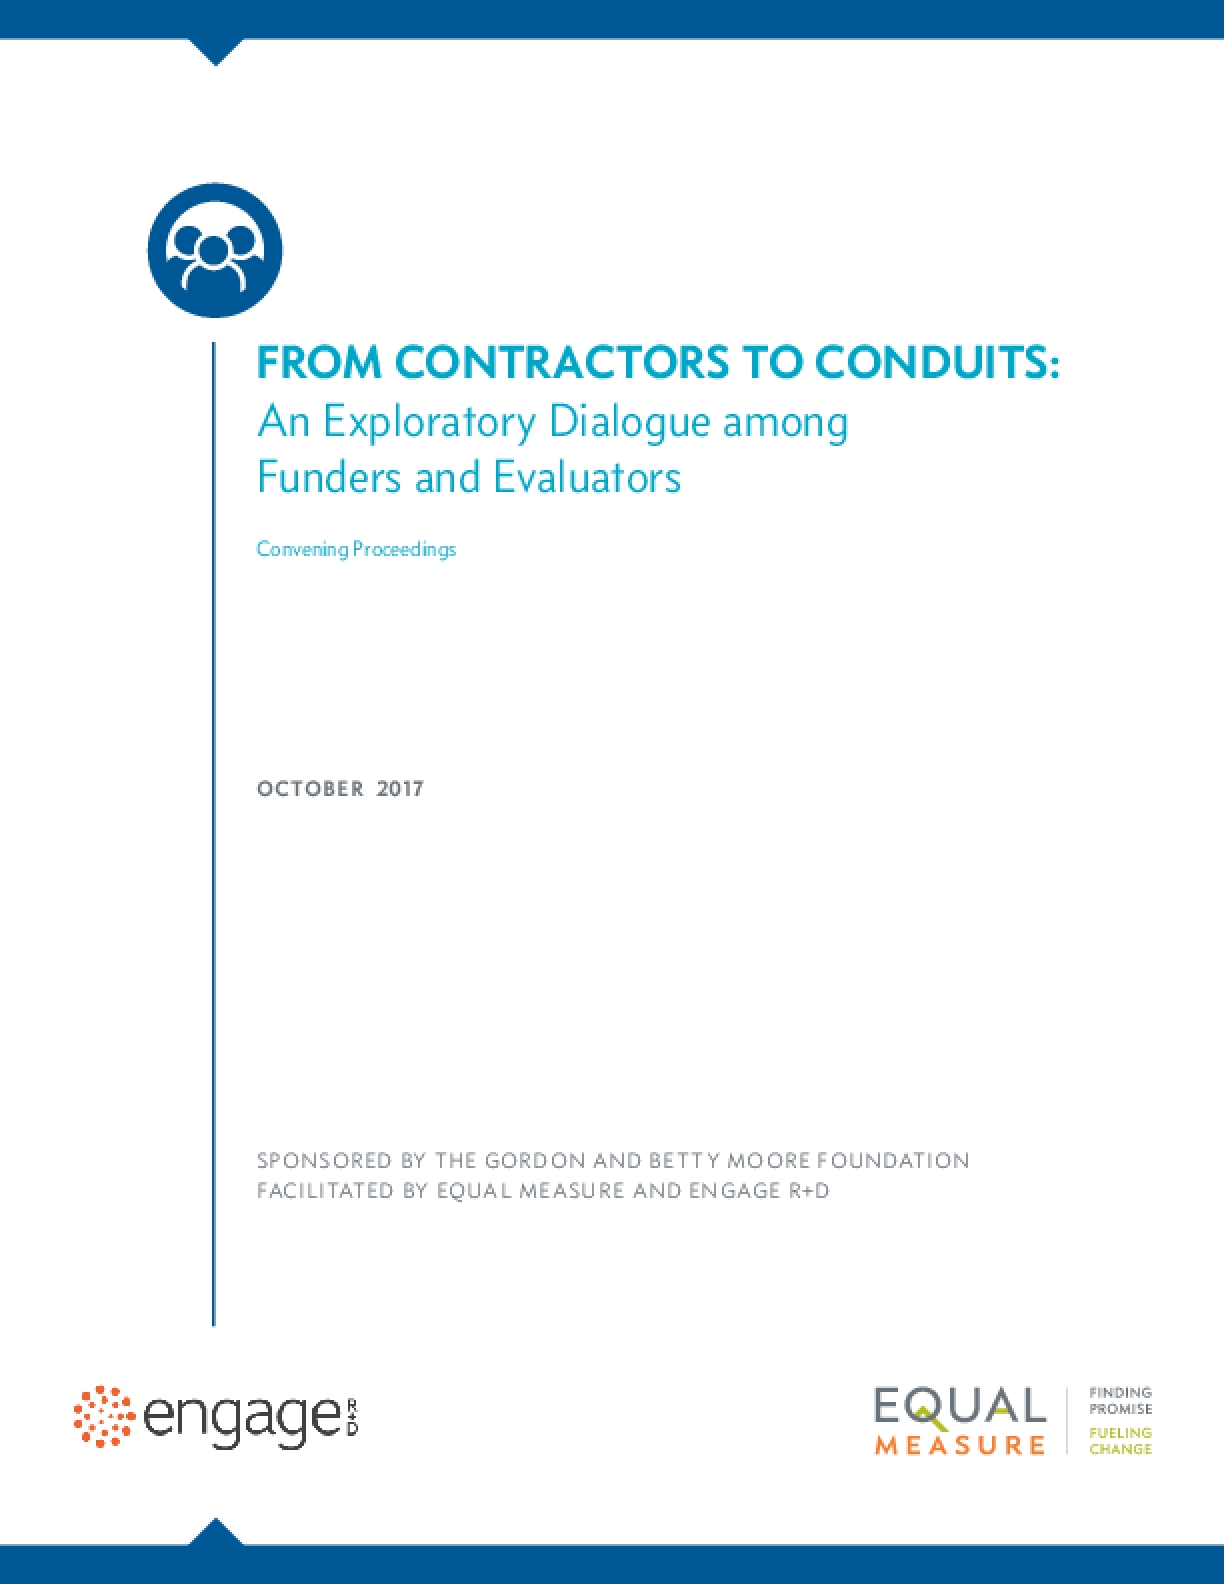 From Contractors to Conduits: An Exploratory Dialogue among Funders and Evaluators